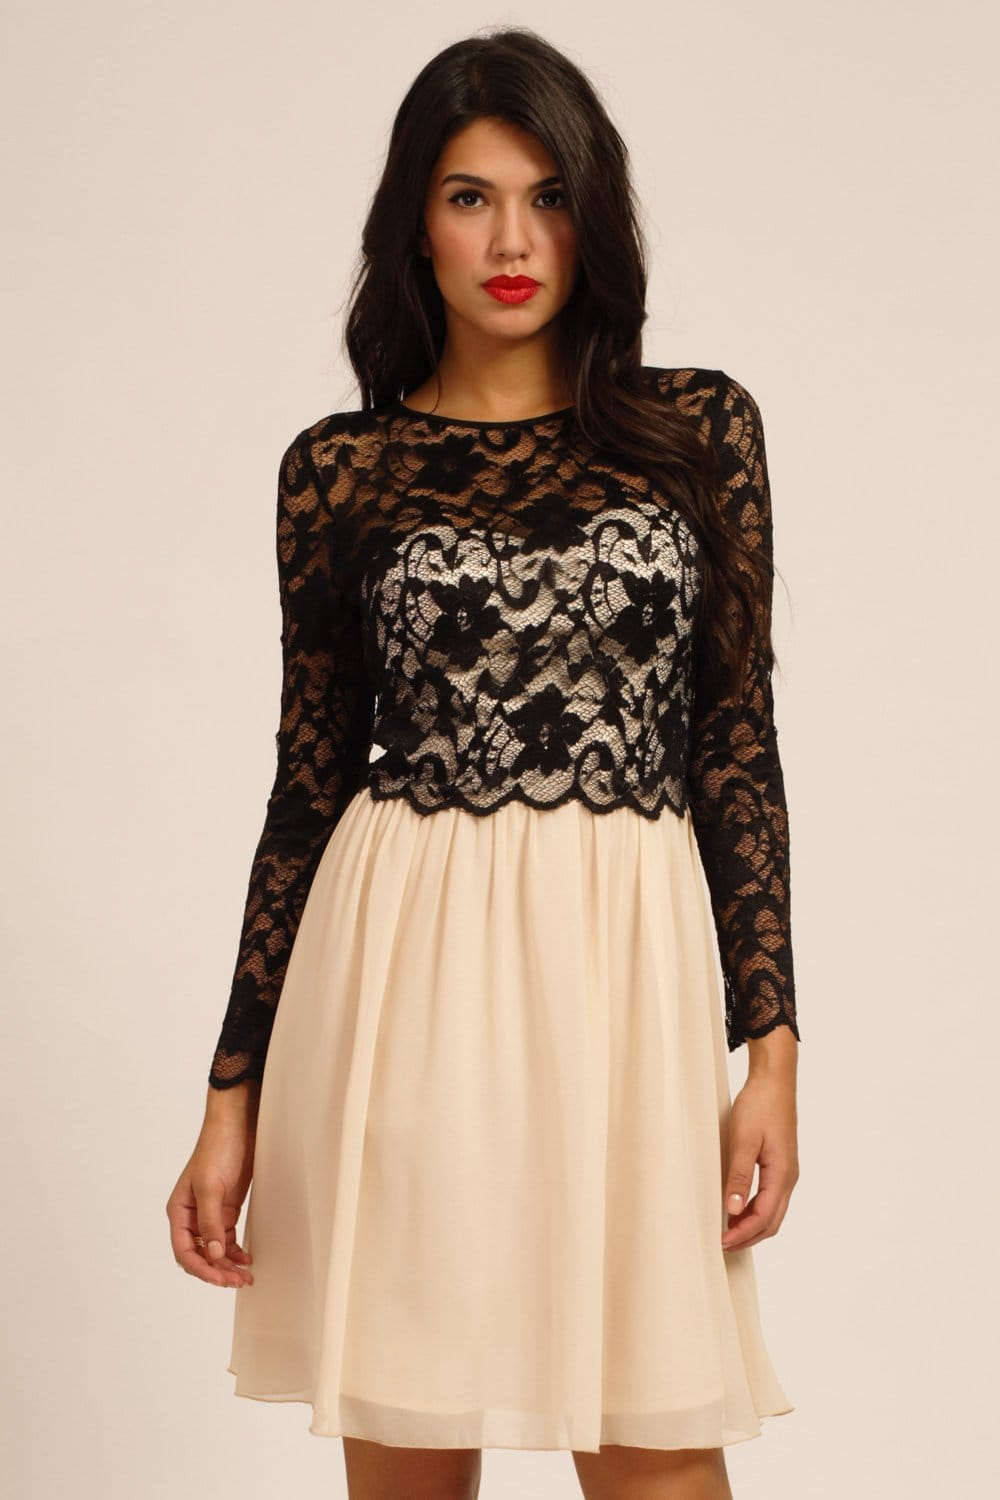 black amp cream floral lace detail long sleeve dress